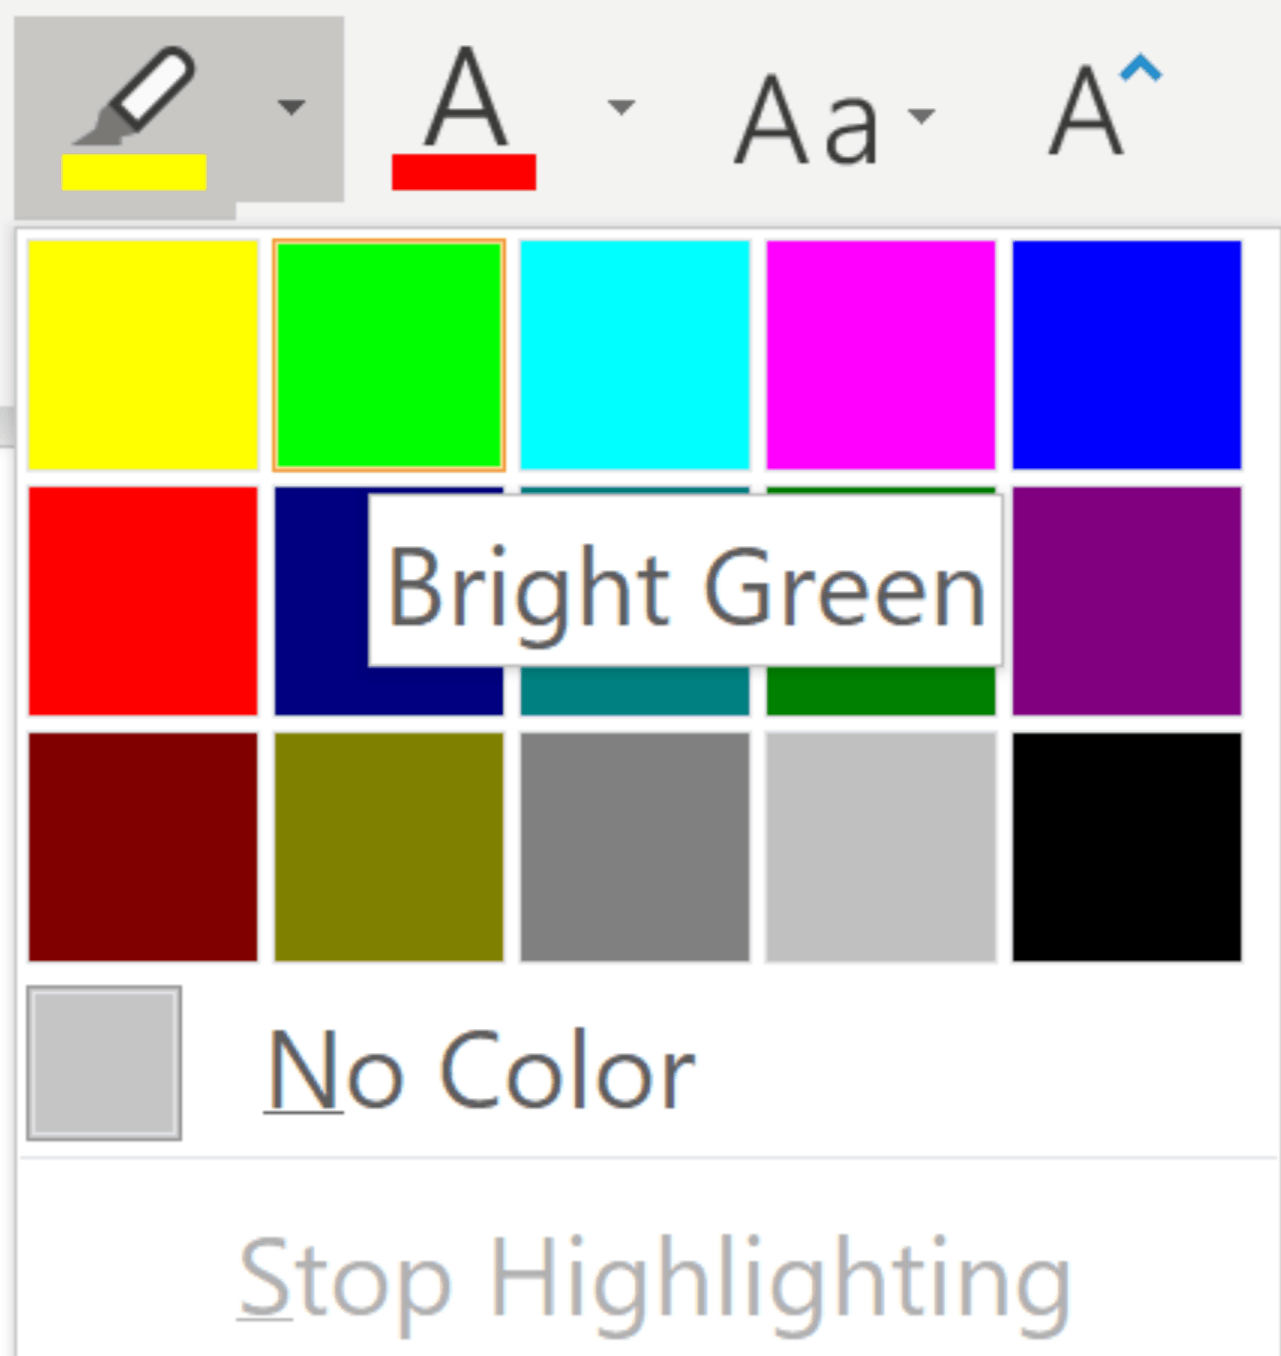 Font group, you'll see a Highlighter icon.